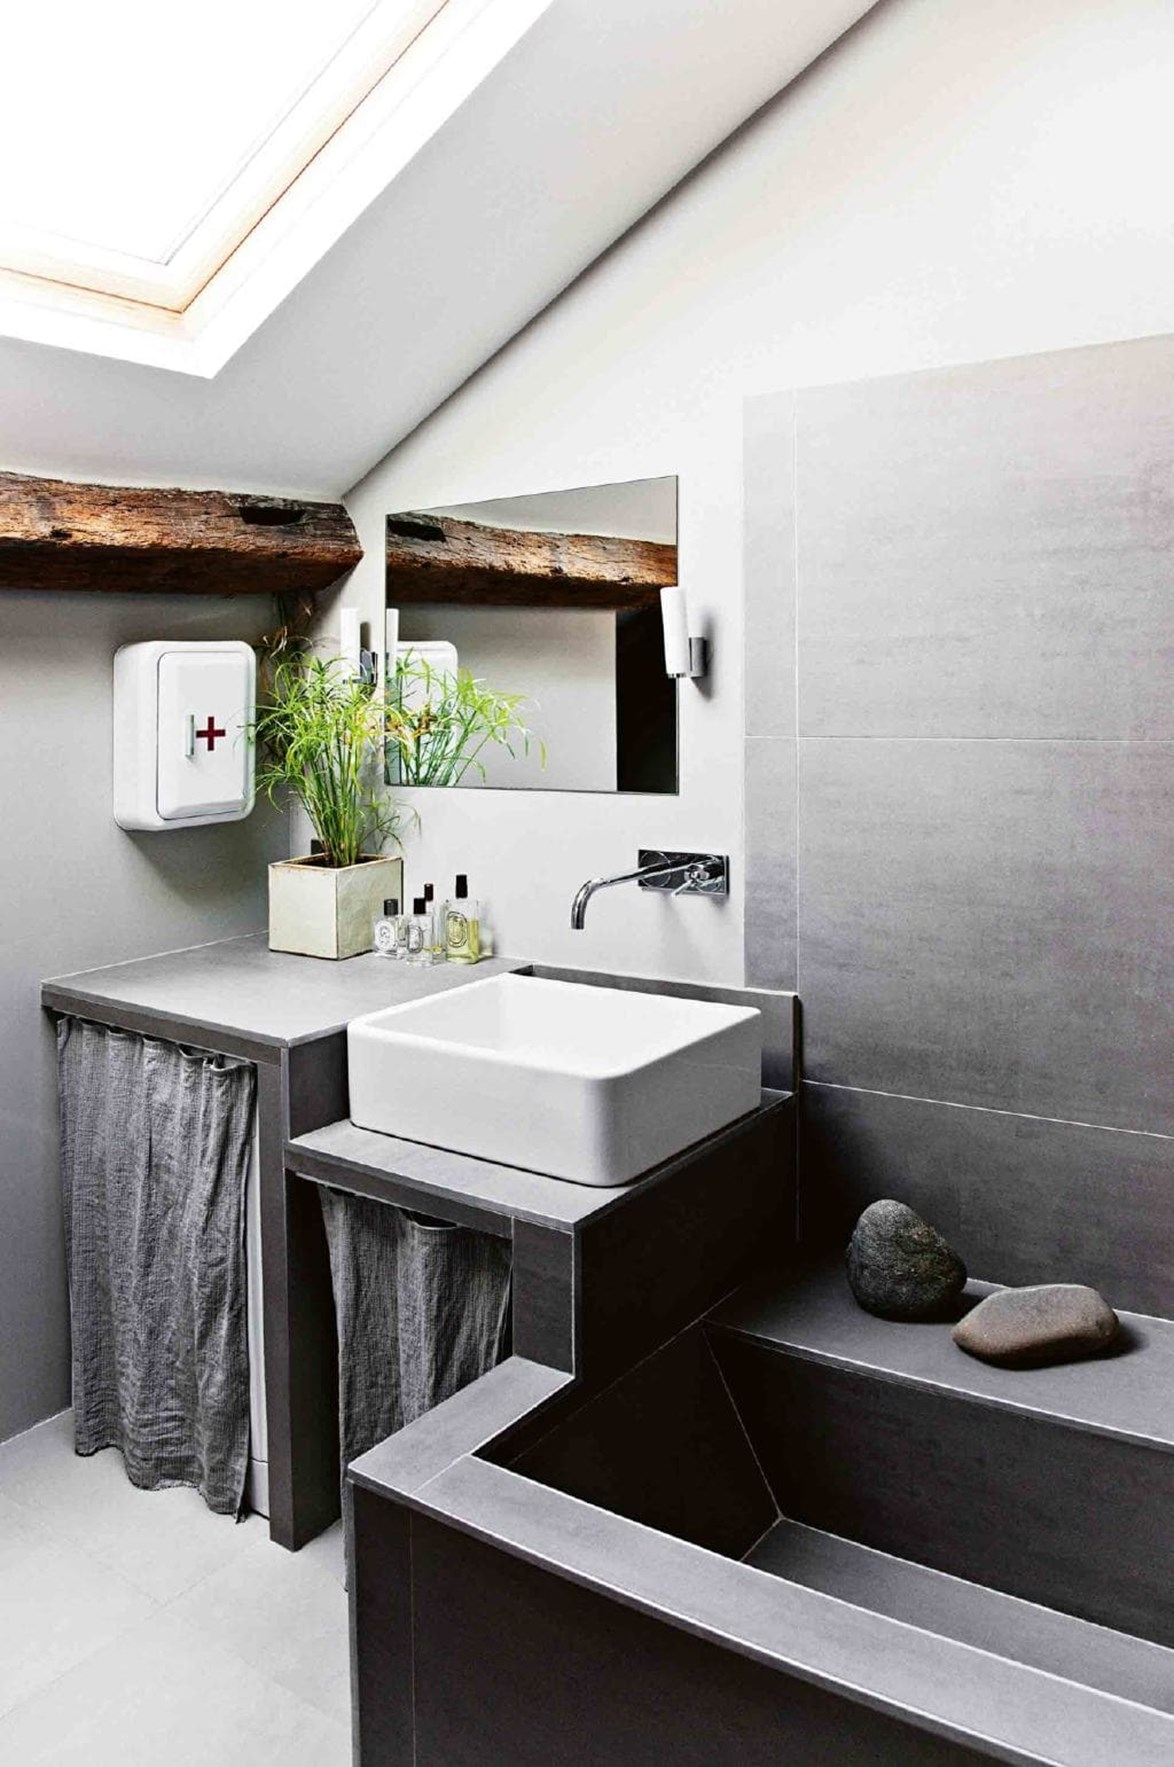 "A modular stone bench morphs into a bath tub which makes the most of the limited space. When renovating their [small Parisian apartment](https://www.homestolove.com.au/small-space-ideas-from-a-parisian-apartment-17037|target=""_blank""), the owner opted for deep grey hues to create a 'nest like' feel. *Photo: Morten Holtum / Living Inside / Styling: Lykke Foged / Story: Inside Out*"